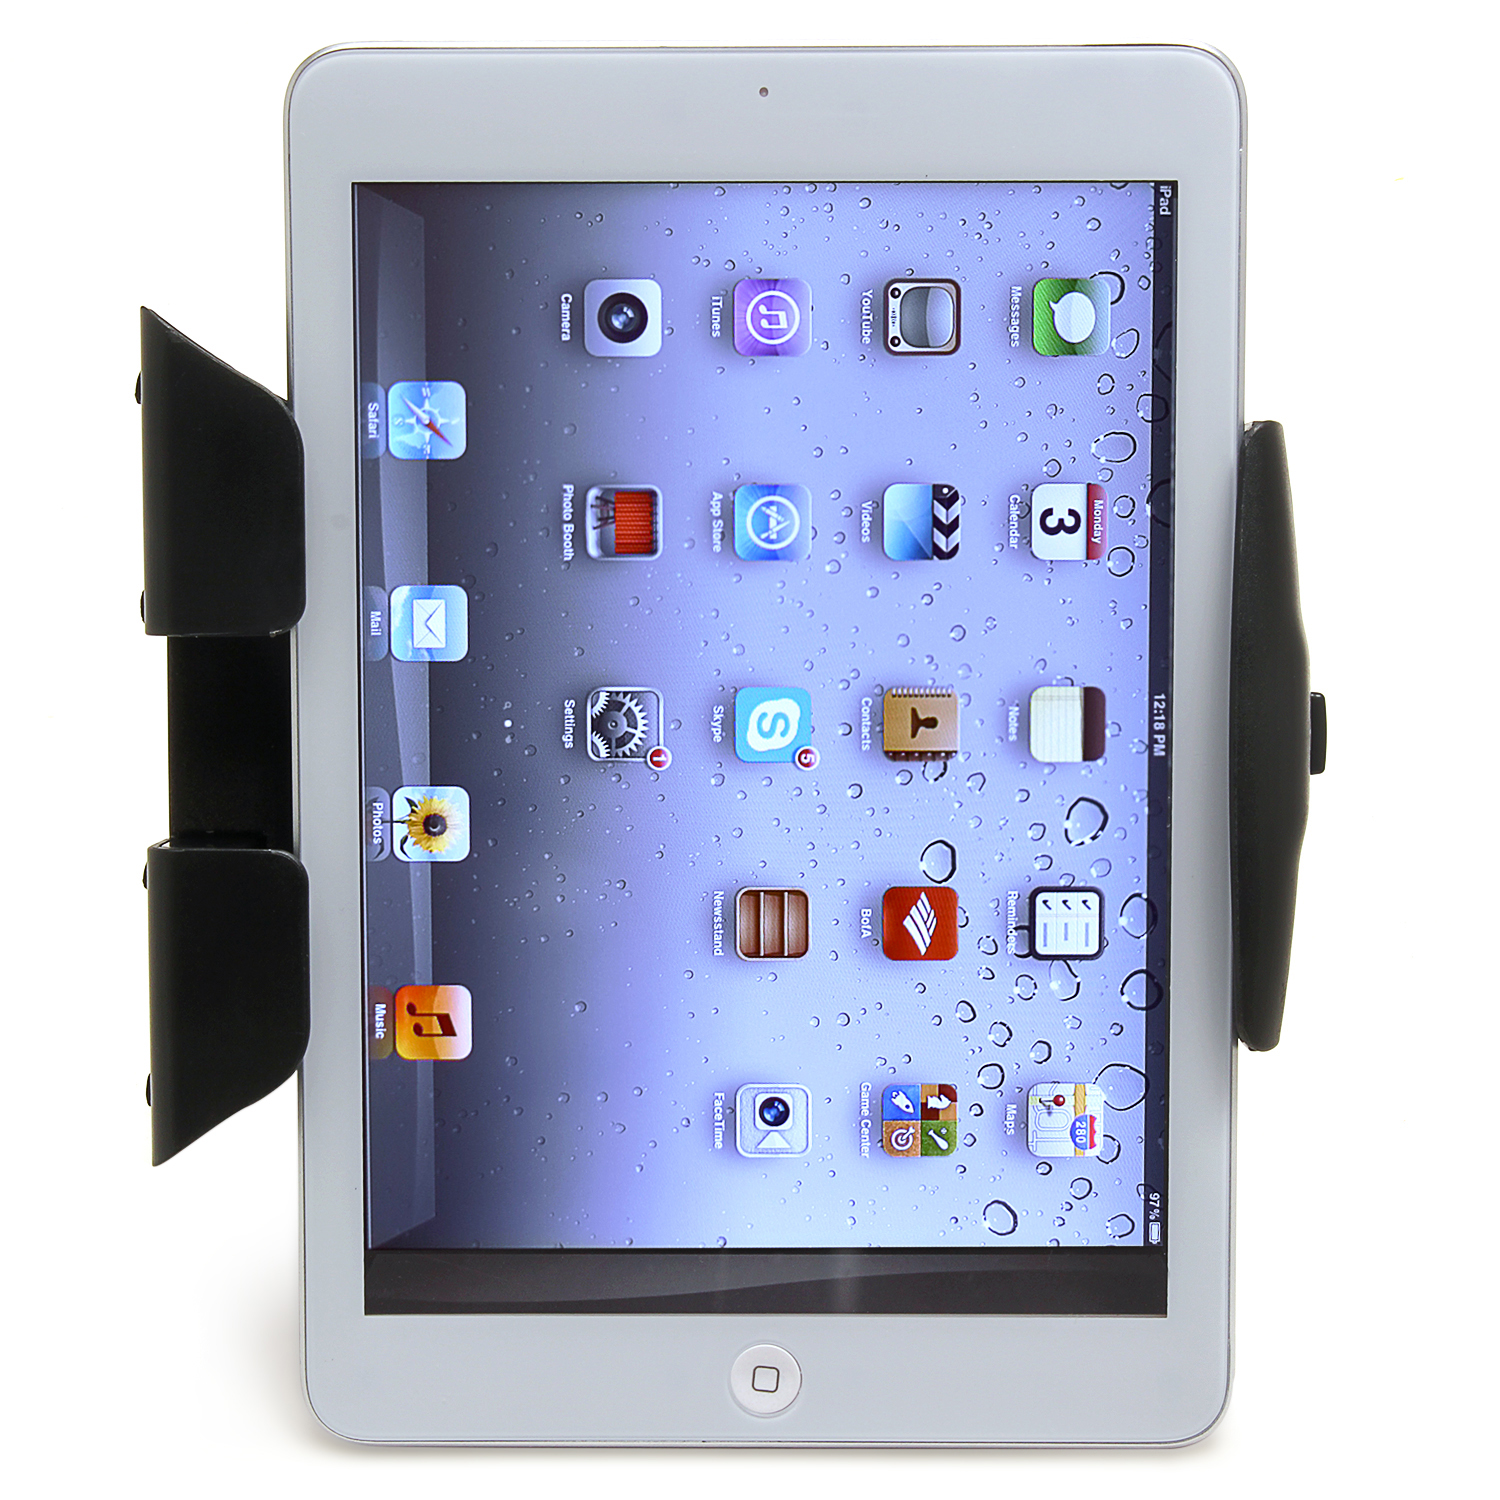 Aduro U Grip Easy Grip Universal Tablet Stand Available